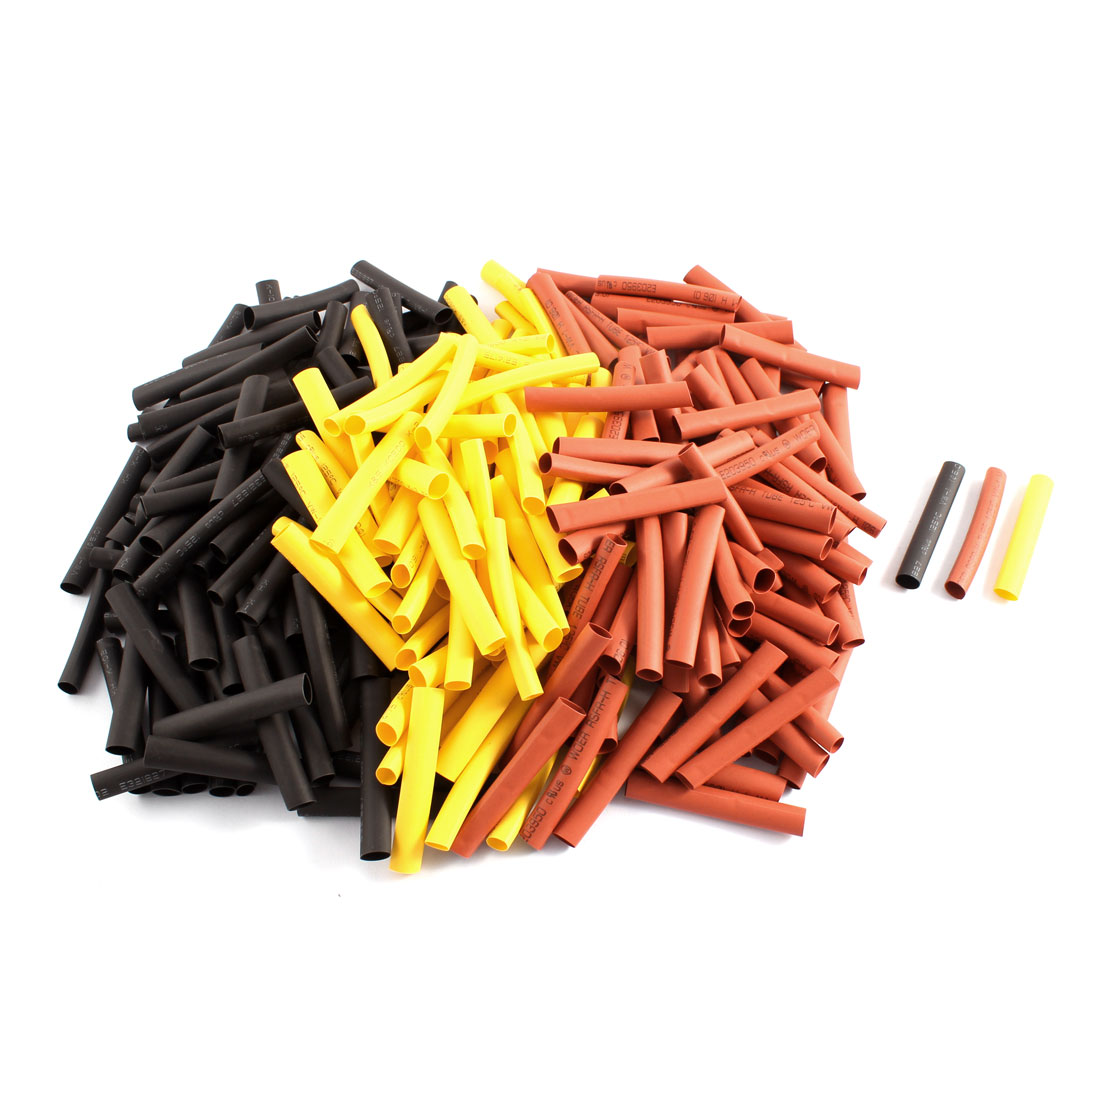 300pcs 6mm Dia 2:1 Heat Shrink Tubing Shrinkable Tube Sleeving Insulated Pipe Cover Cable Wrap